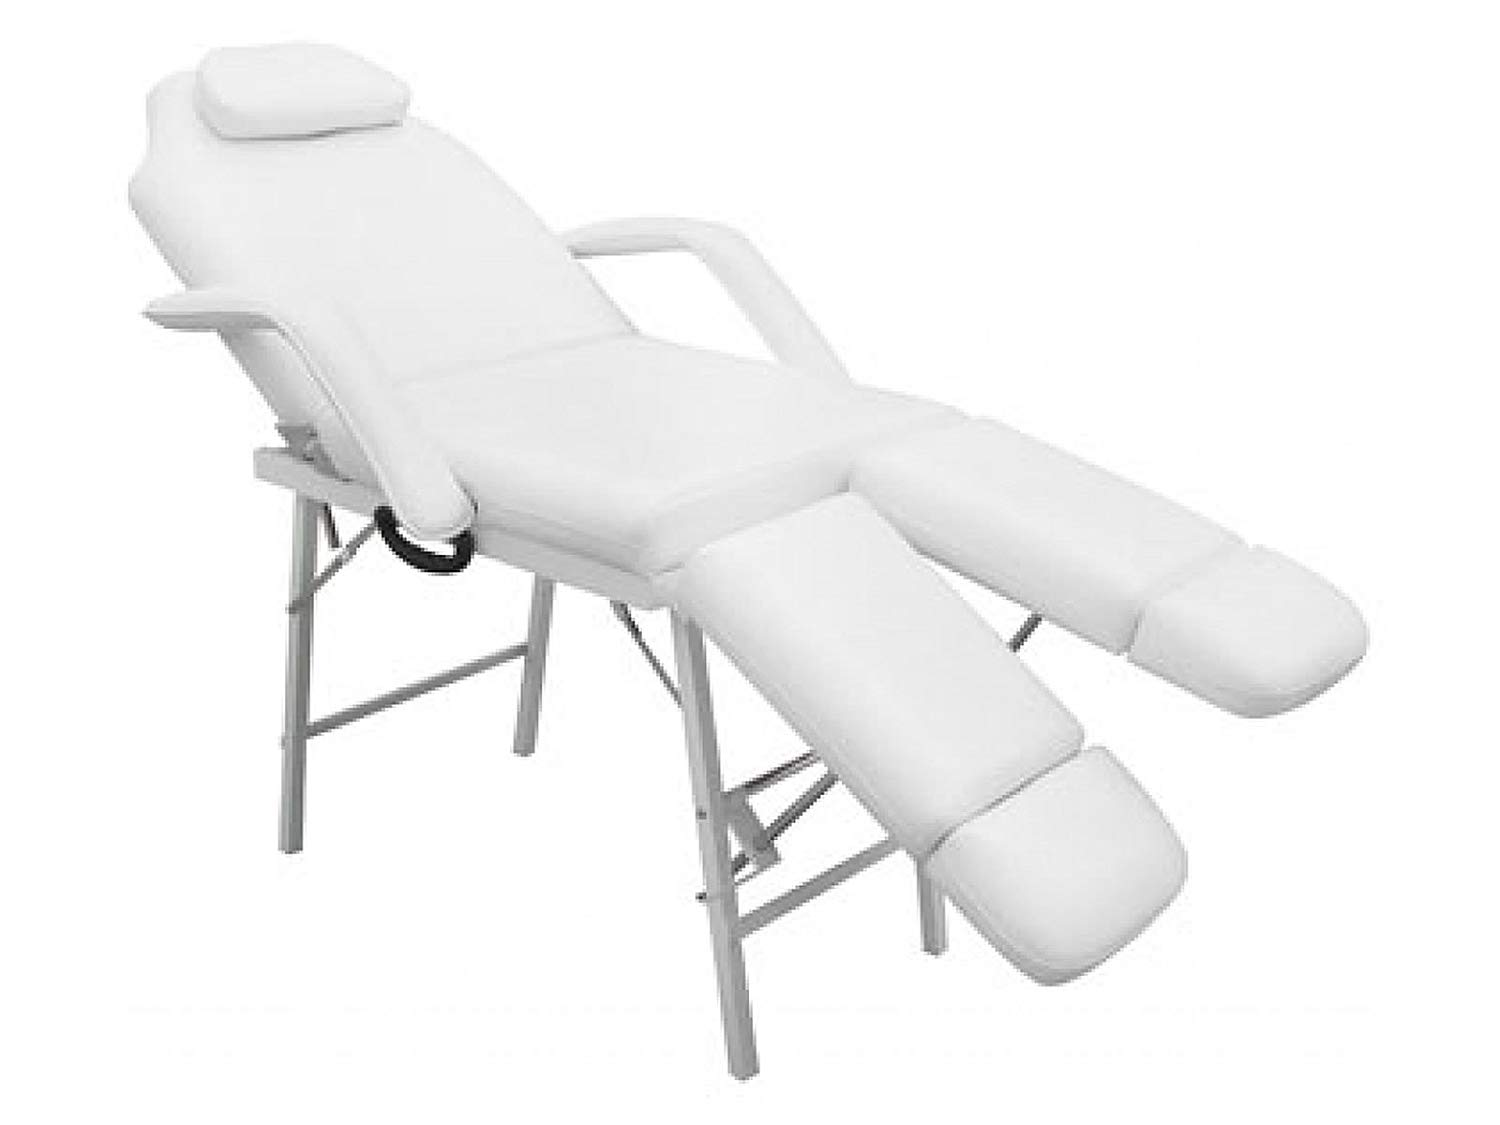 """Svitlife 75"""" Portable Tattoo Parlor Spa Salon Facial Bed Beauty Massage Table Chair White Adjustable Black 75 73 Barber Basket"""